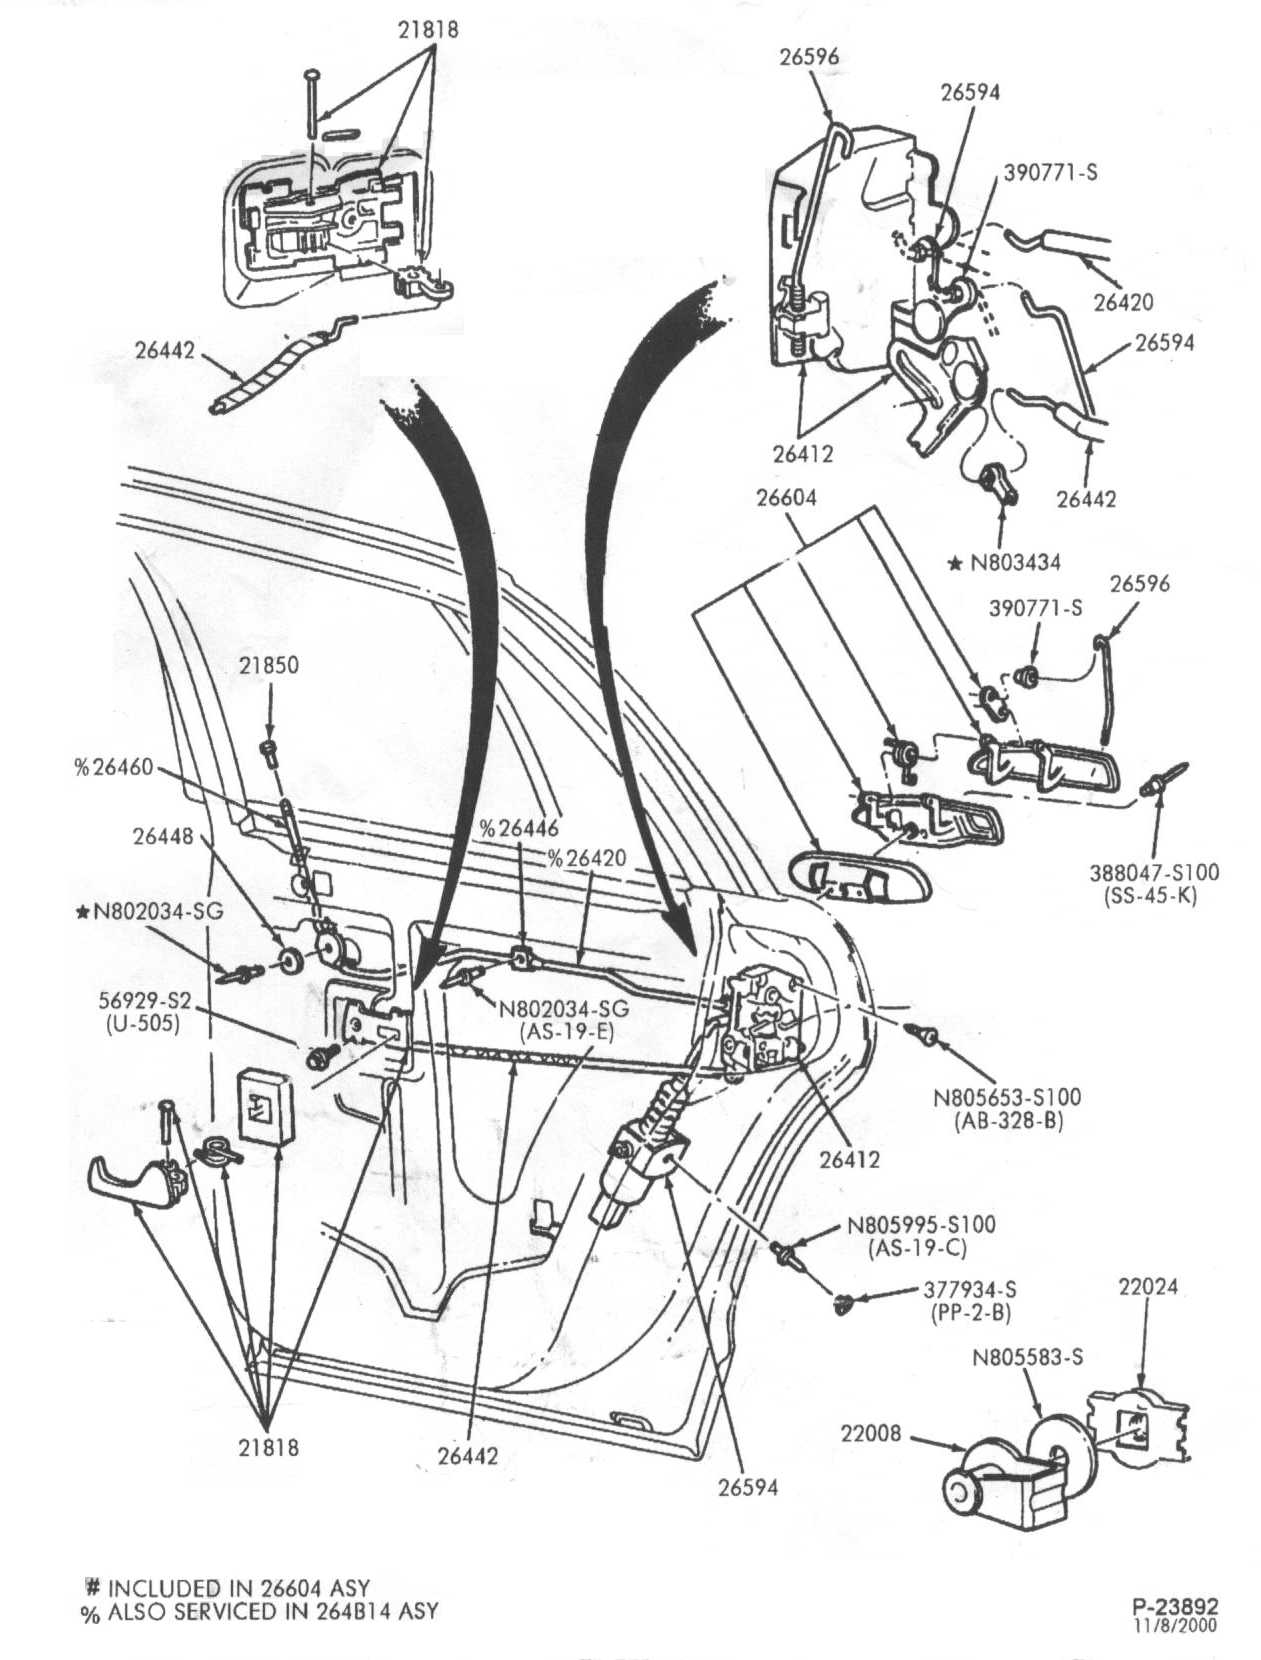 Excellent diagram of car parts images electrical and wiring captivating car interior parts diagram pictures best image pooptronica